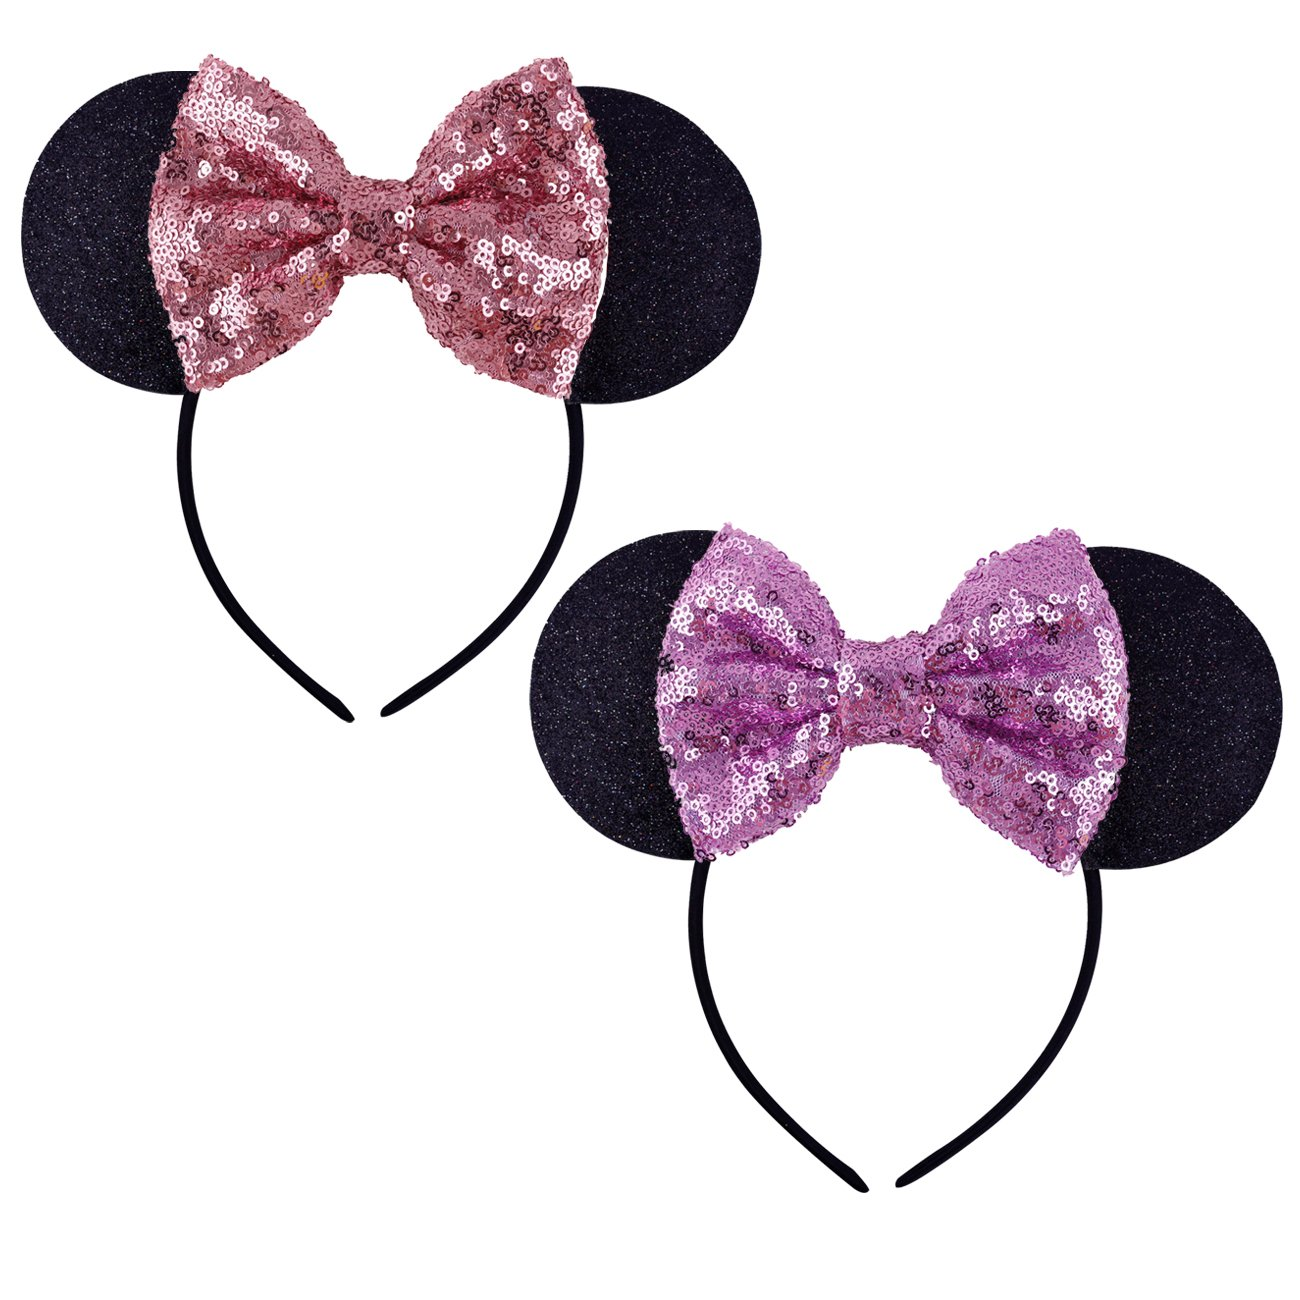 DRESHOW Mickey Ears Headbands Sequin Hair Band Accessories for Women Girls Cosplay Party